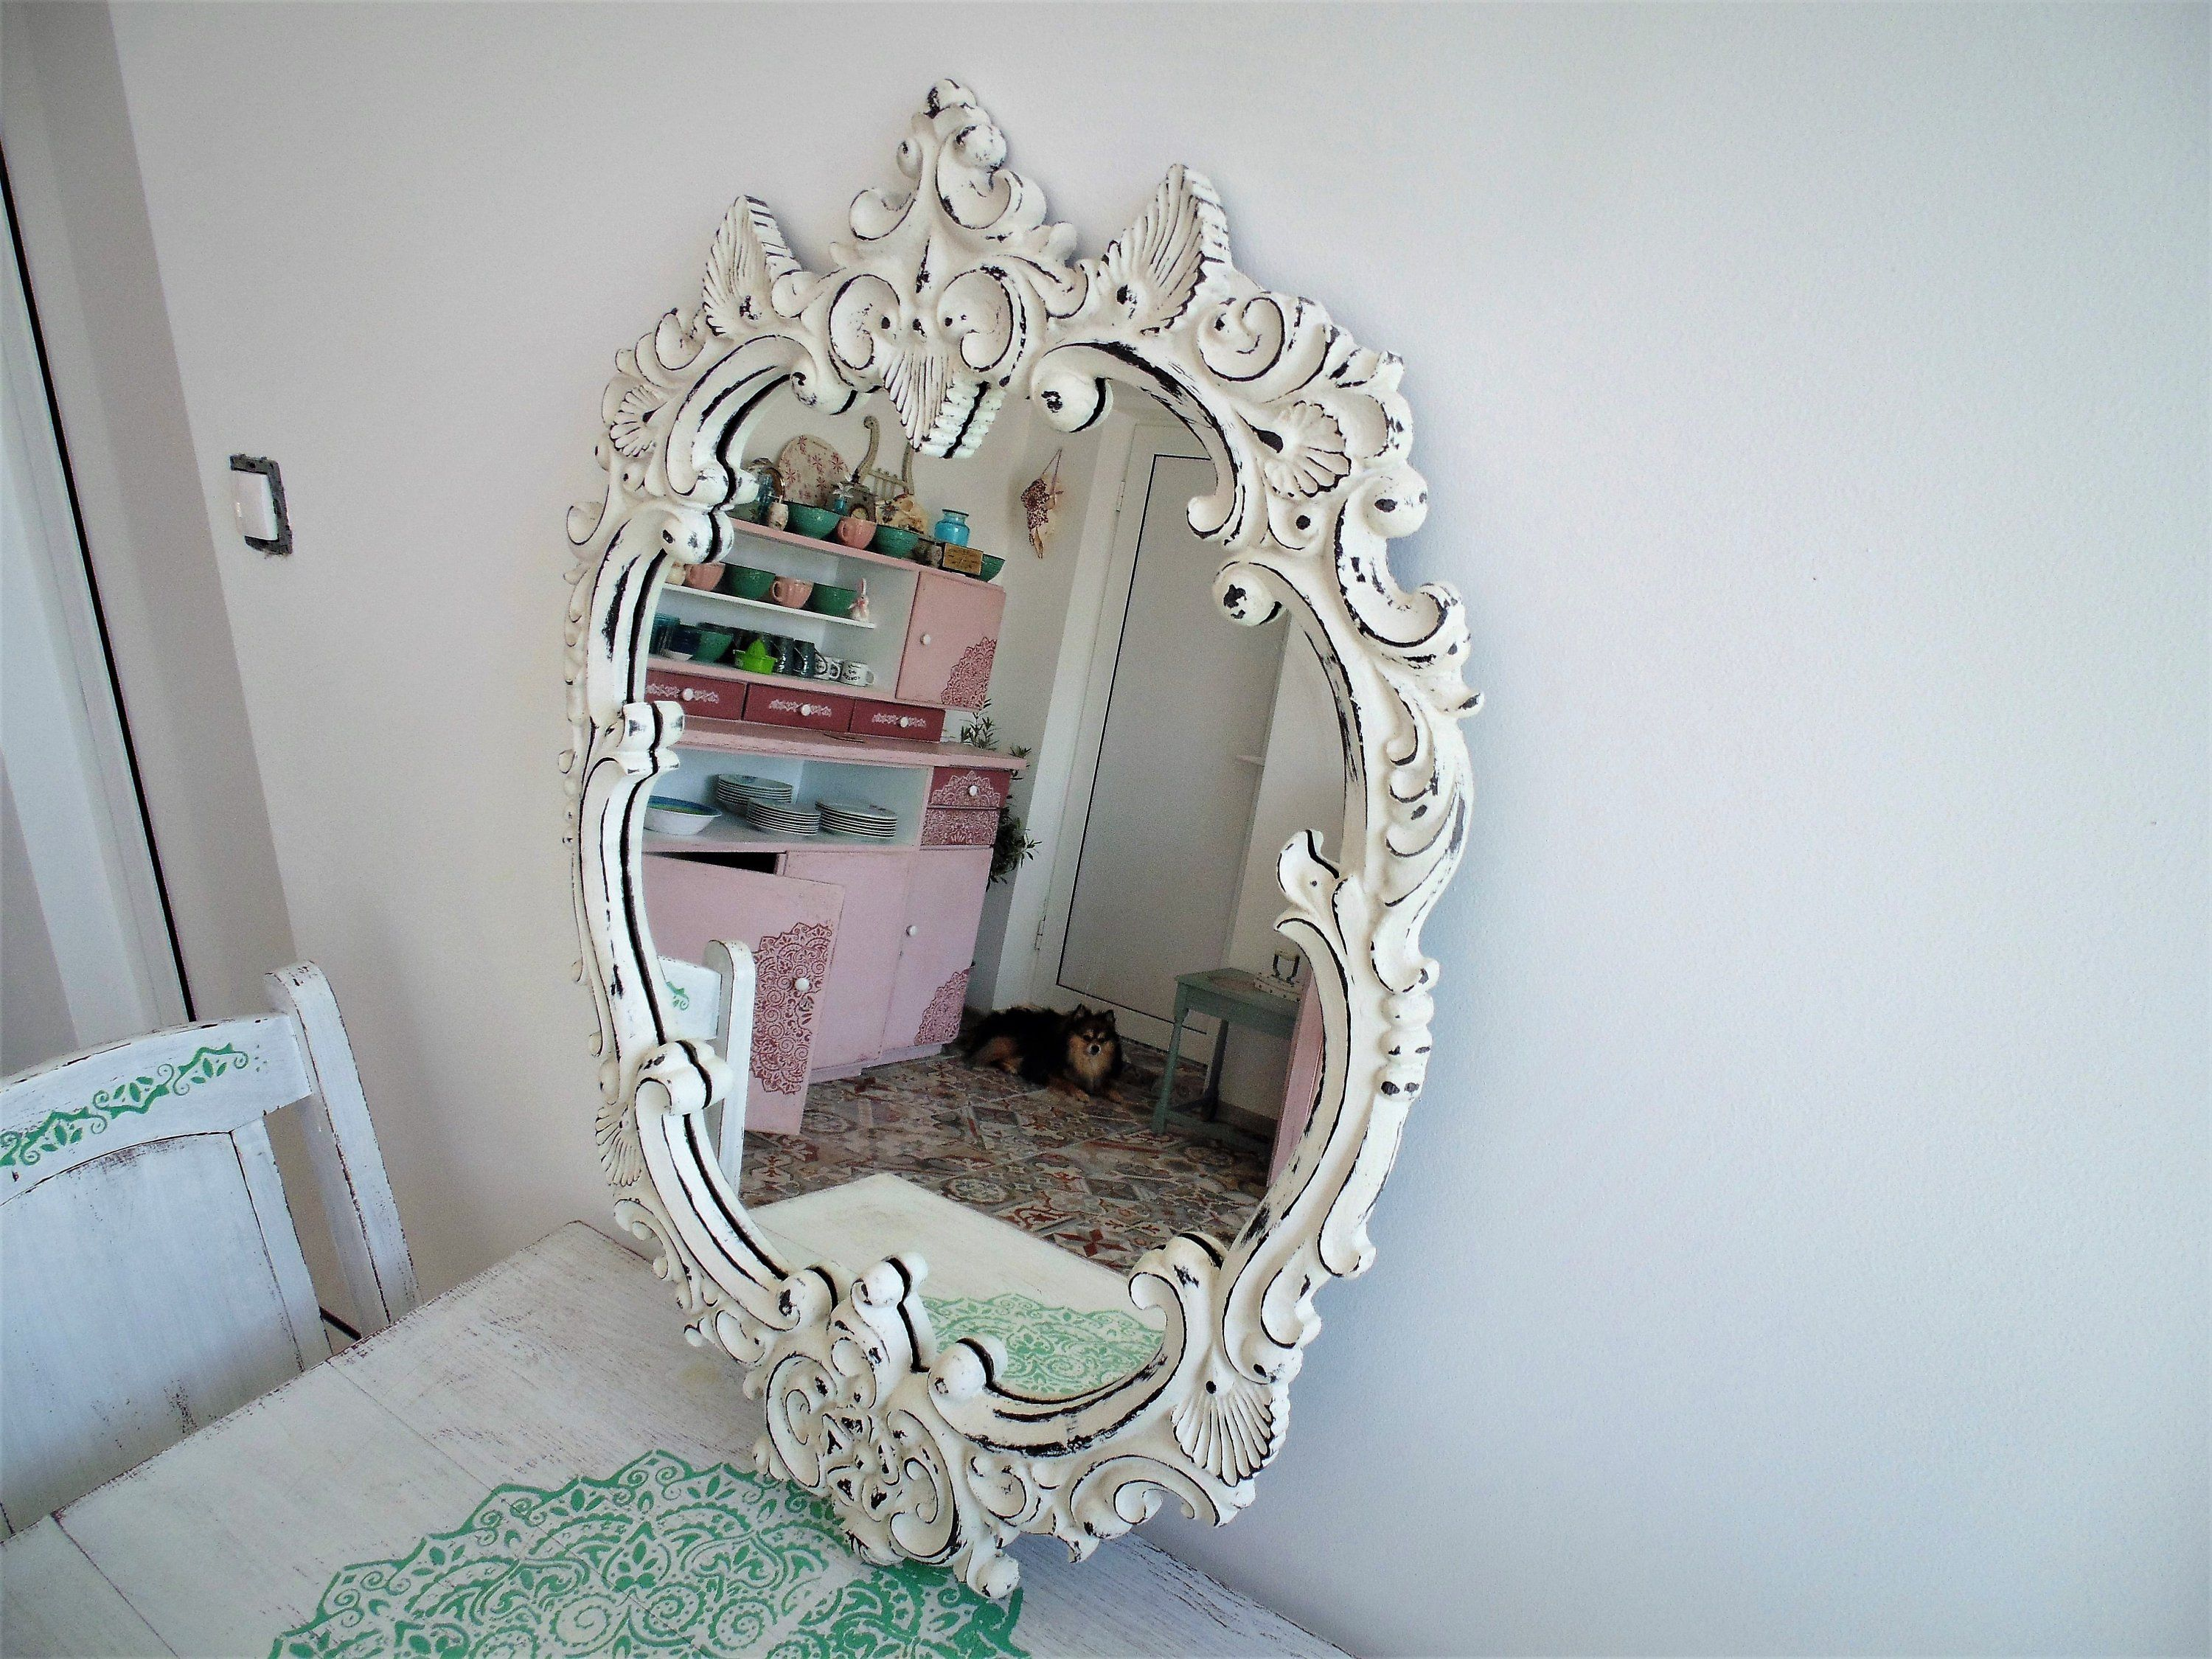 Vintage Mirror Vintage Frame Framed Mirror Polirezin Mirror White Framed Mirror Antique Mirror White Boho Mirror White Mirror Frame Vintage Mirror Antique Mirror